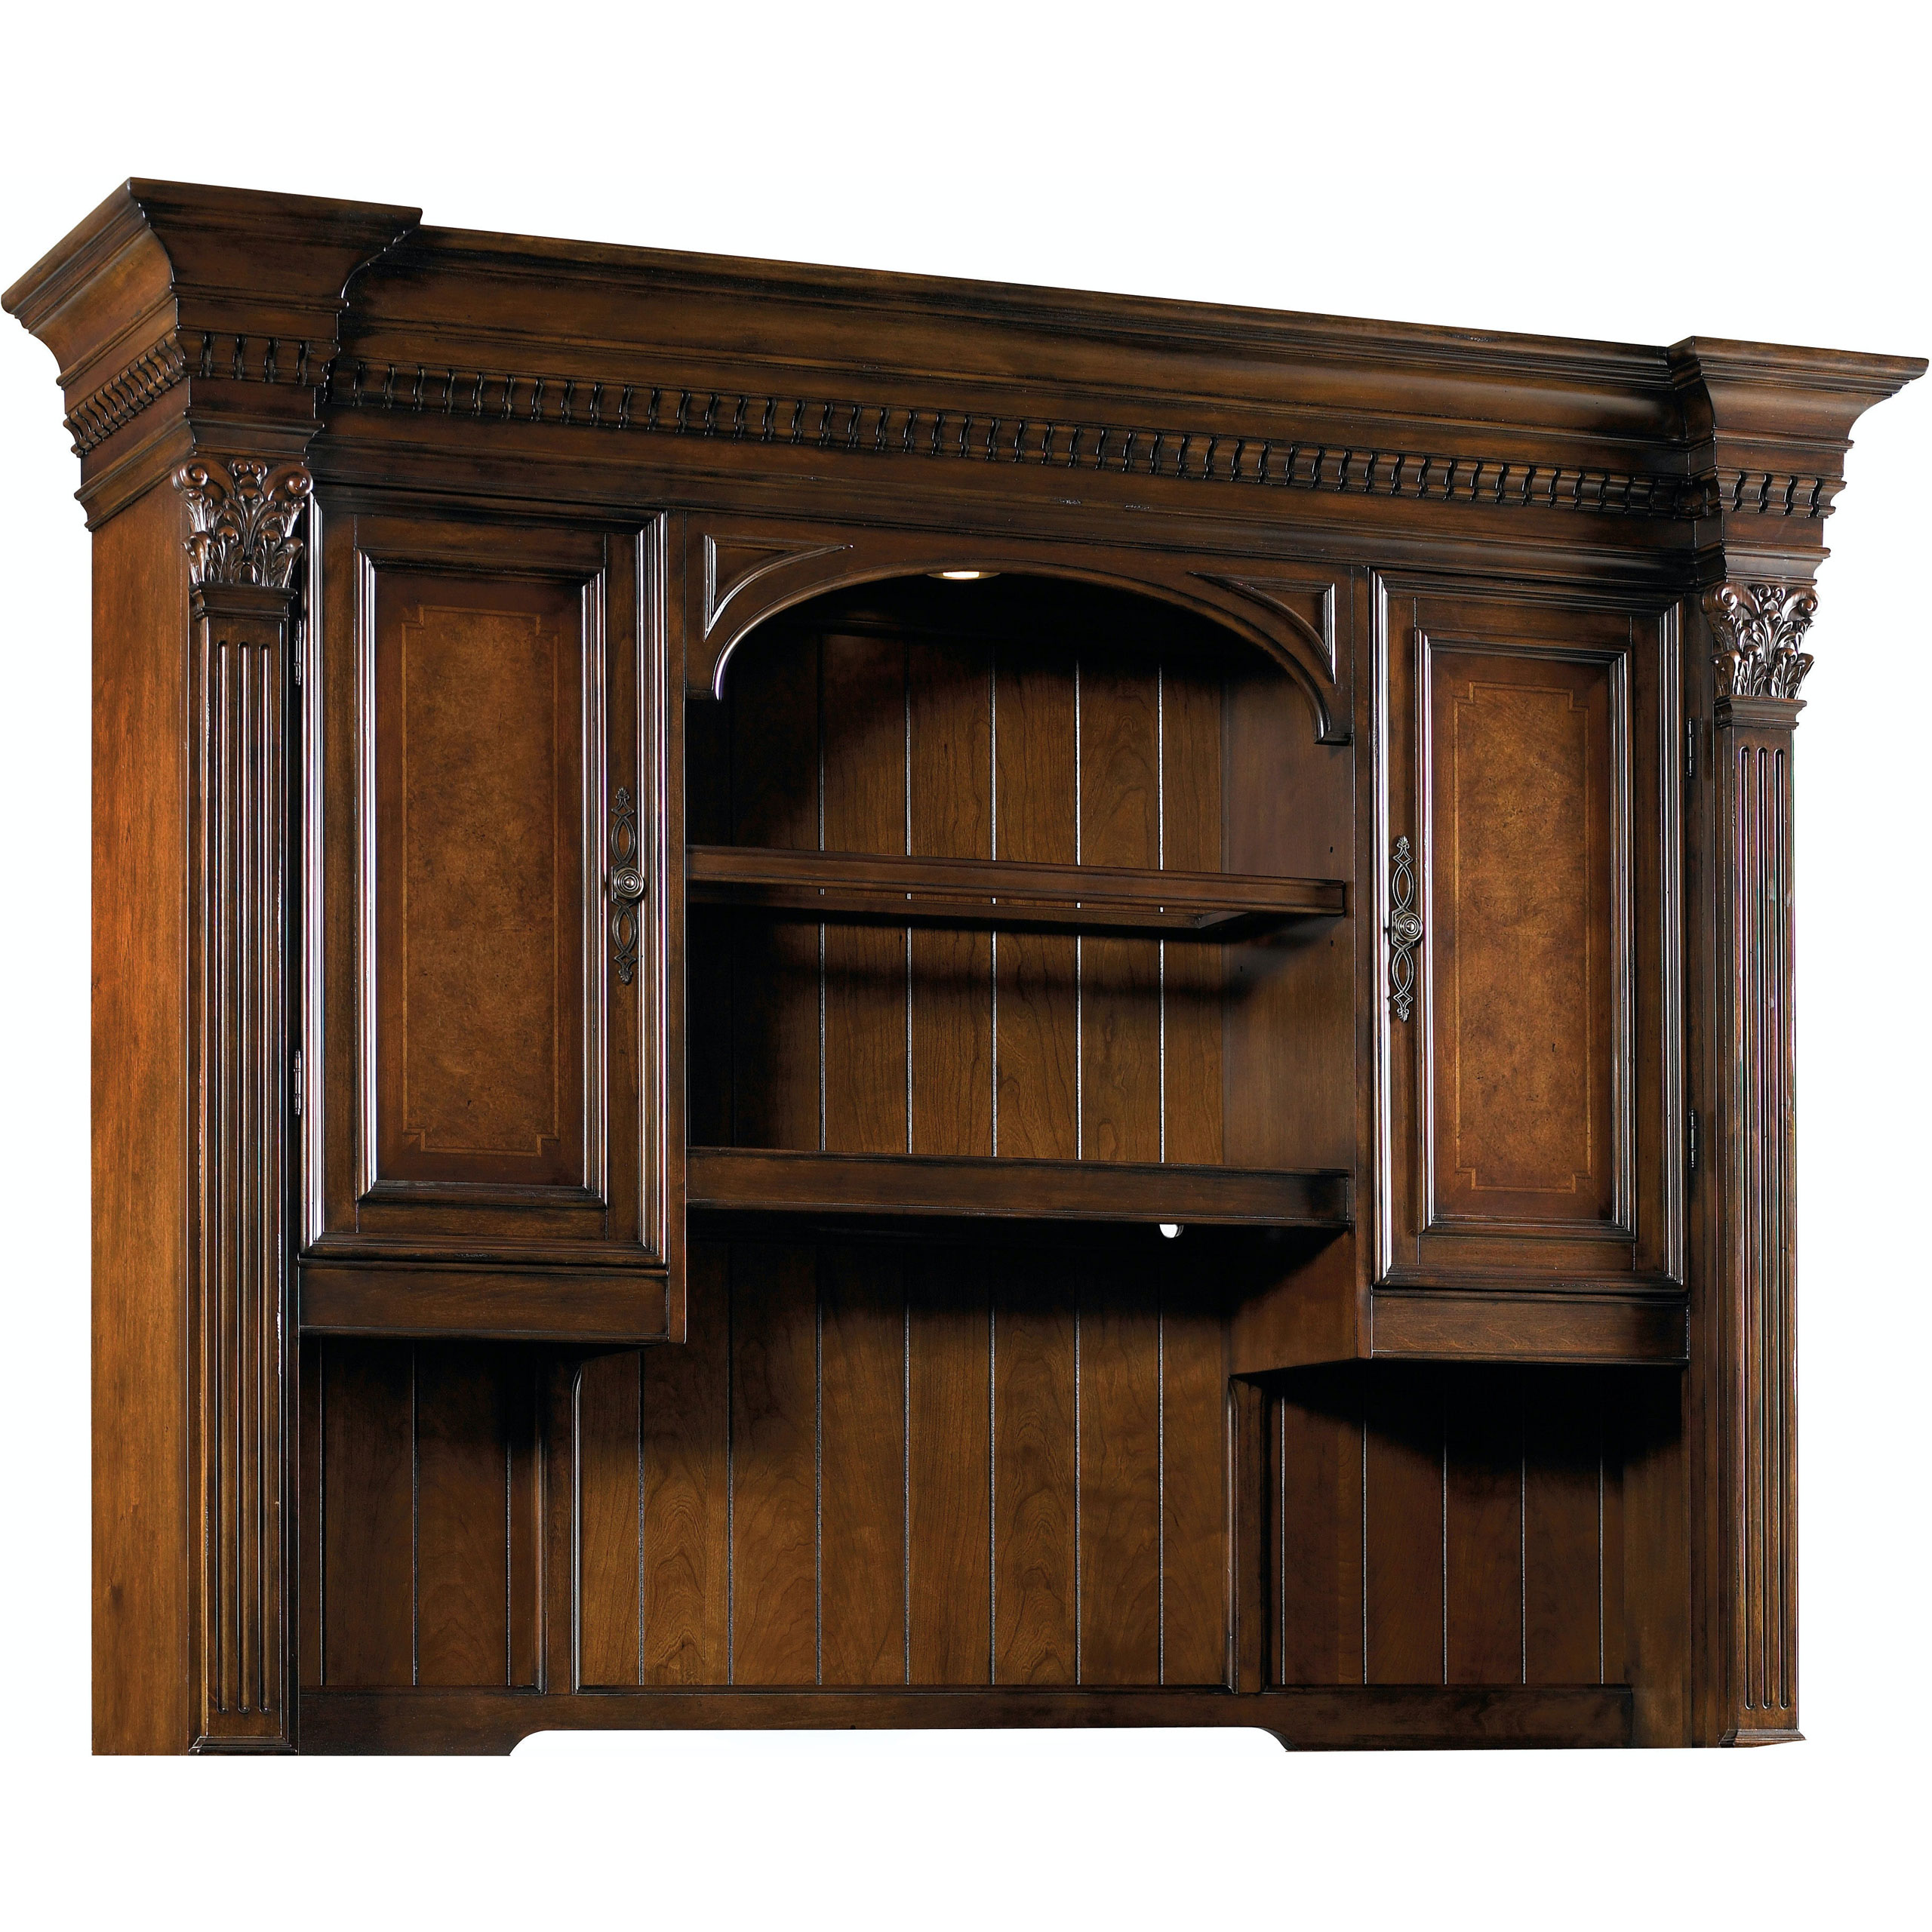 European Furniture Markham European Renaissance Ii Computer Credenza Hutch 374 10 467